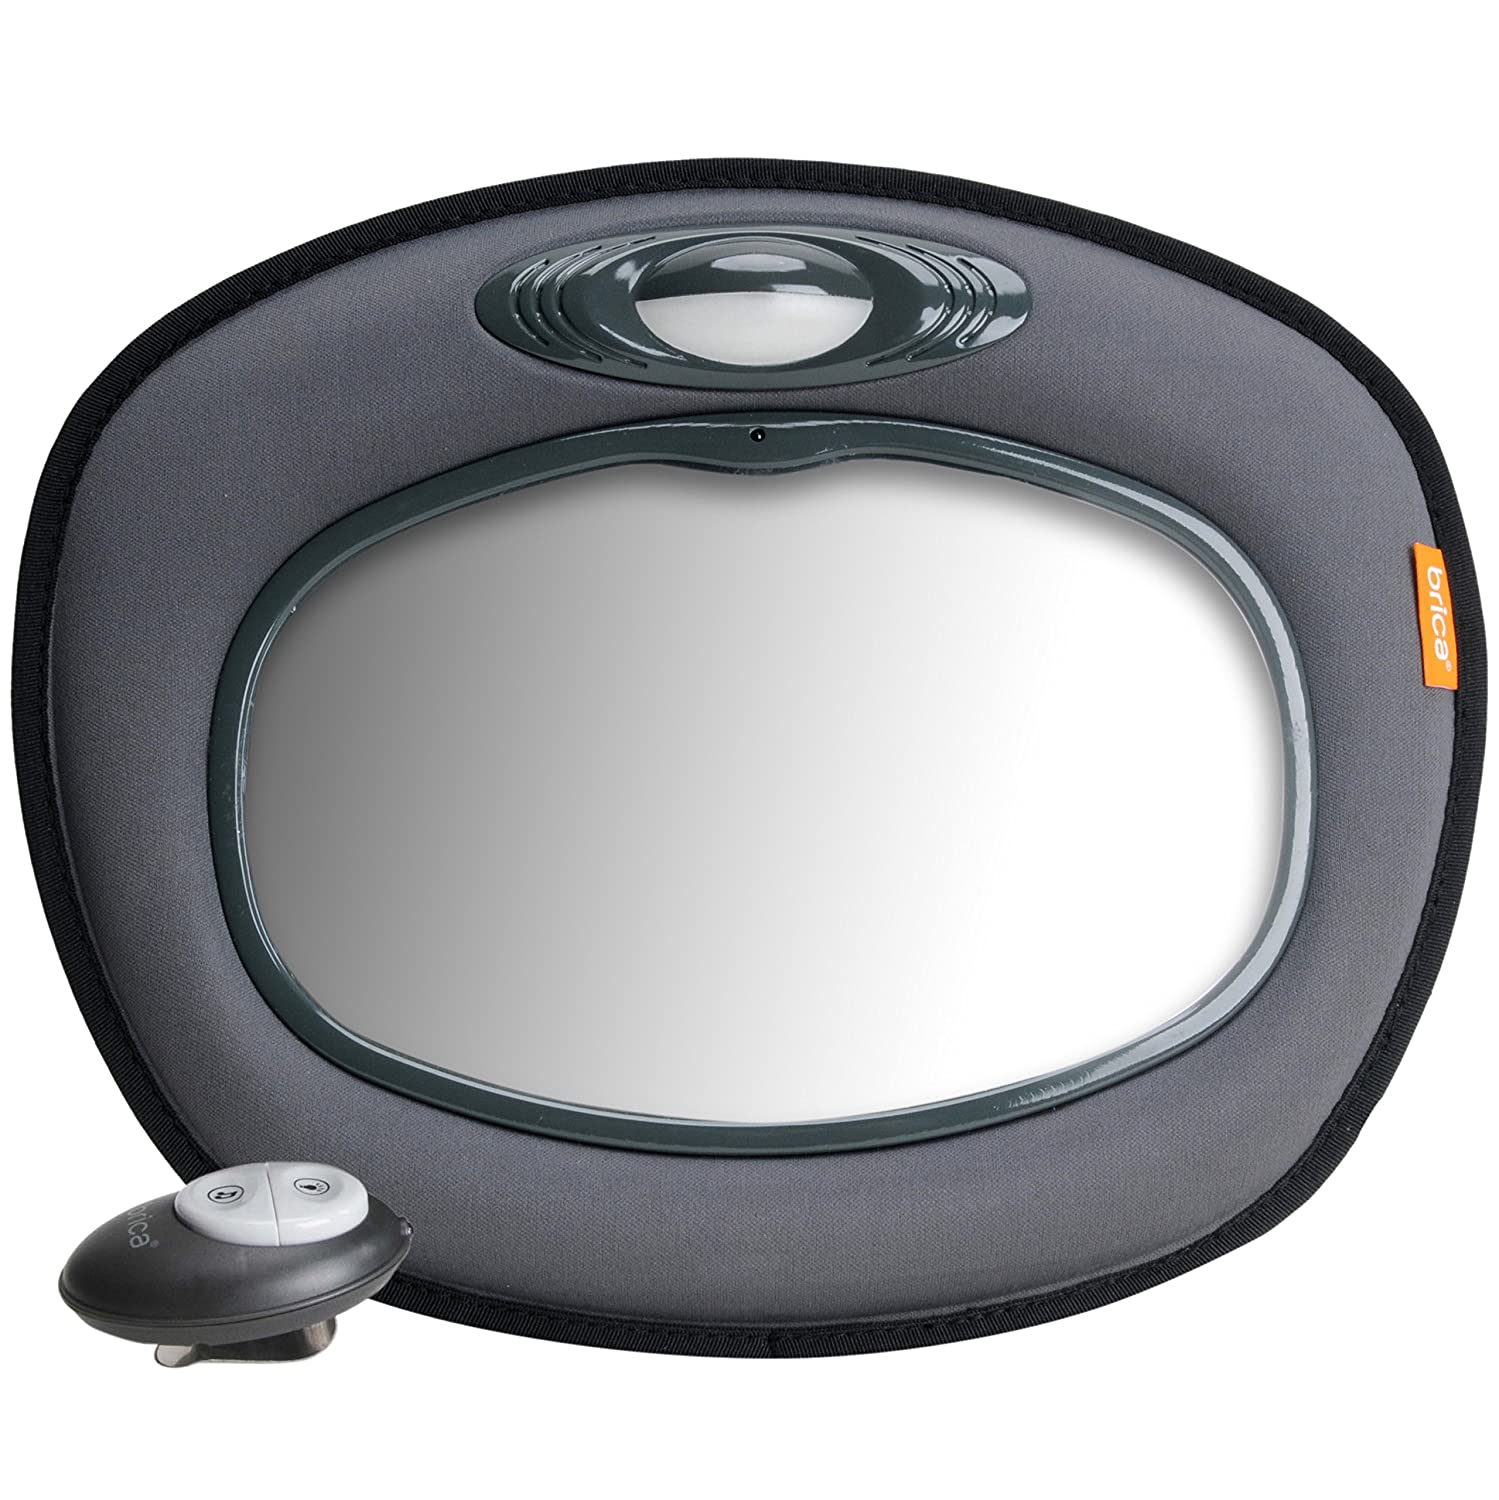 BRICA Day & Night Light Musical Auto Mirror for in Car Safety, Grey 63006